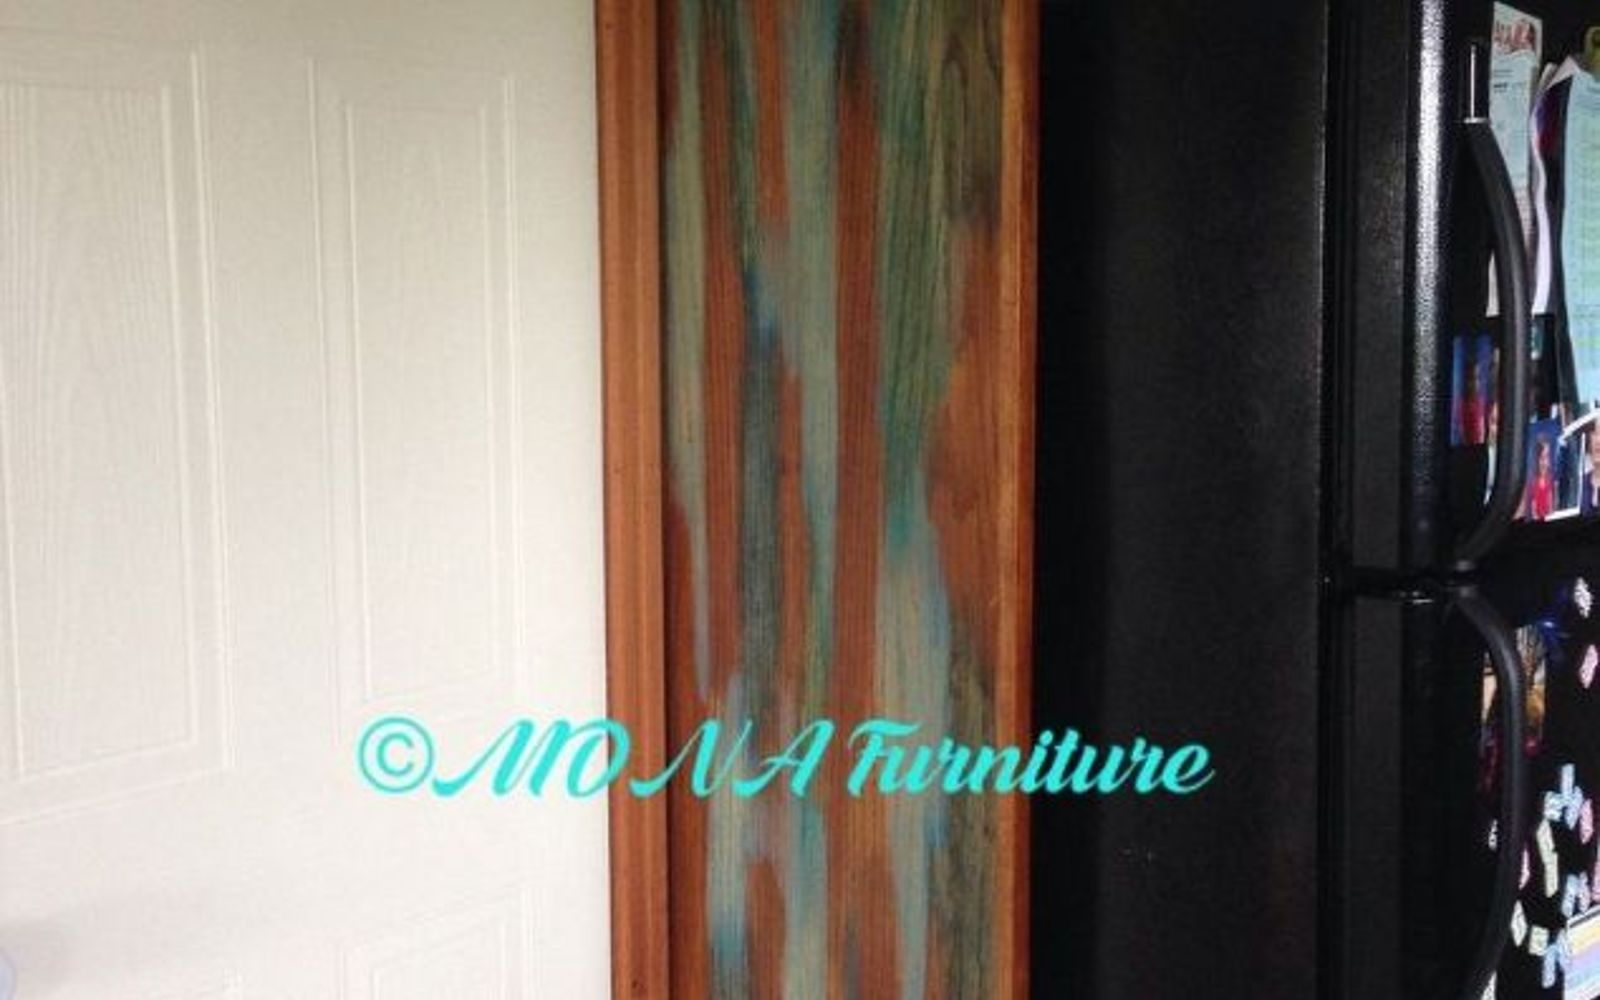 s 13 kitchen paint colors people are pinning like crazy, kitchen design, paint colors, Stain the wood with shades of blue